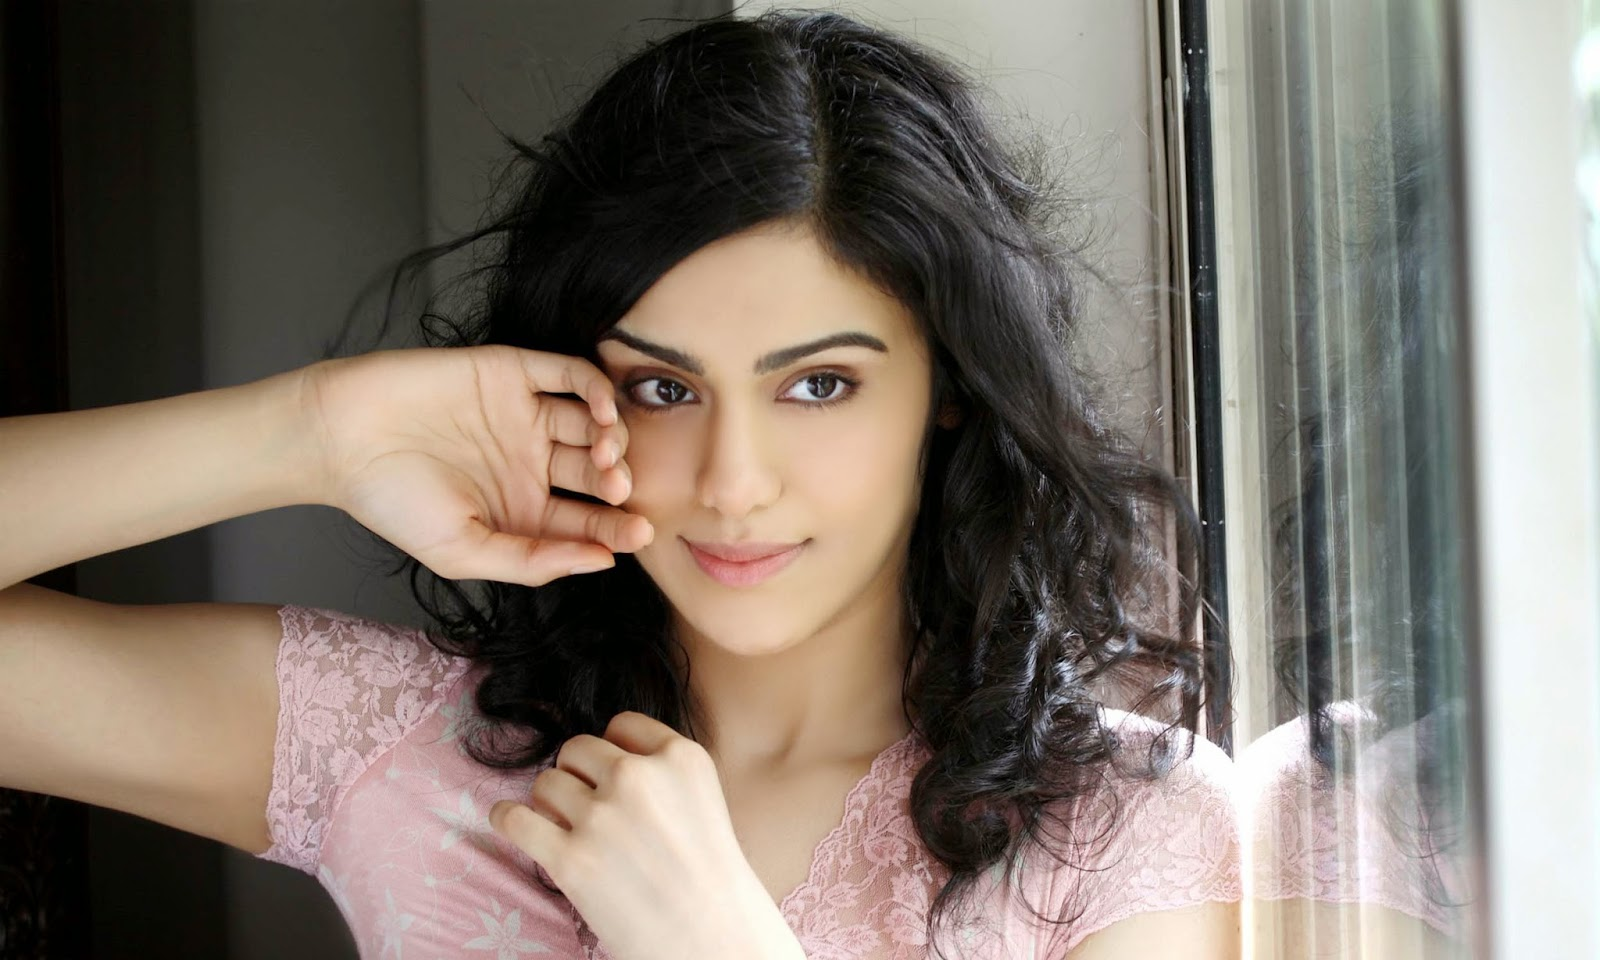 lovely adah sharma cute face free mobile desktop hd background picures